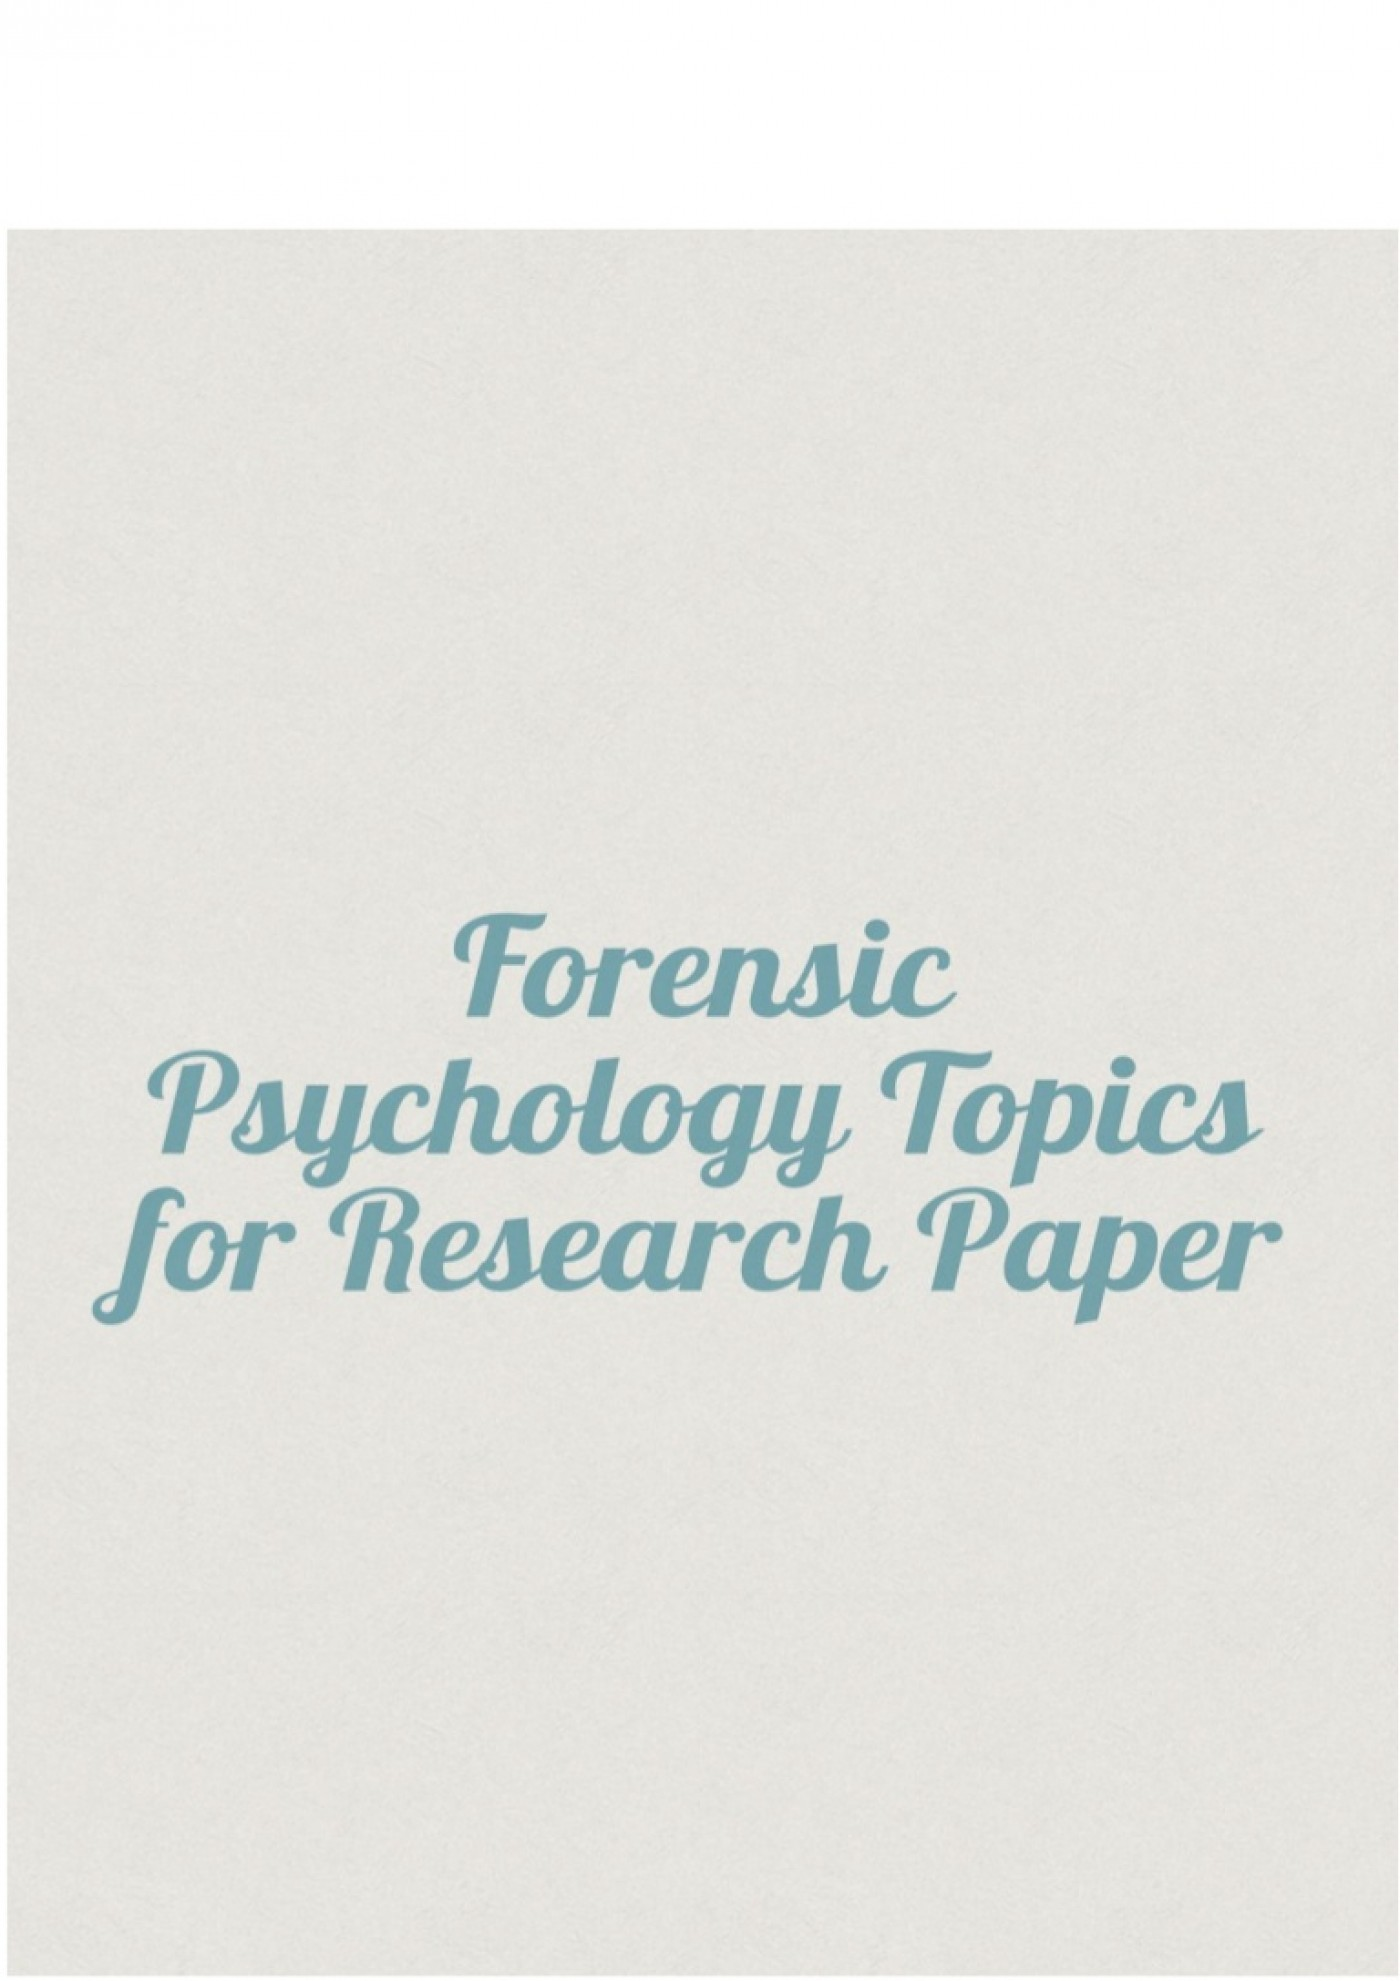 008 Psychology Topics For Research Paper Forensicpsychologytopicsforresearchpaper Thumbnail Wondrous Health Cognitive Papers Potential Developmental 1400